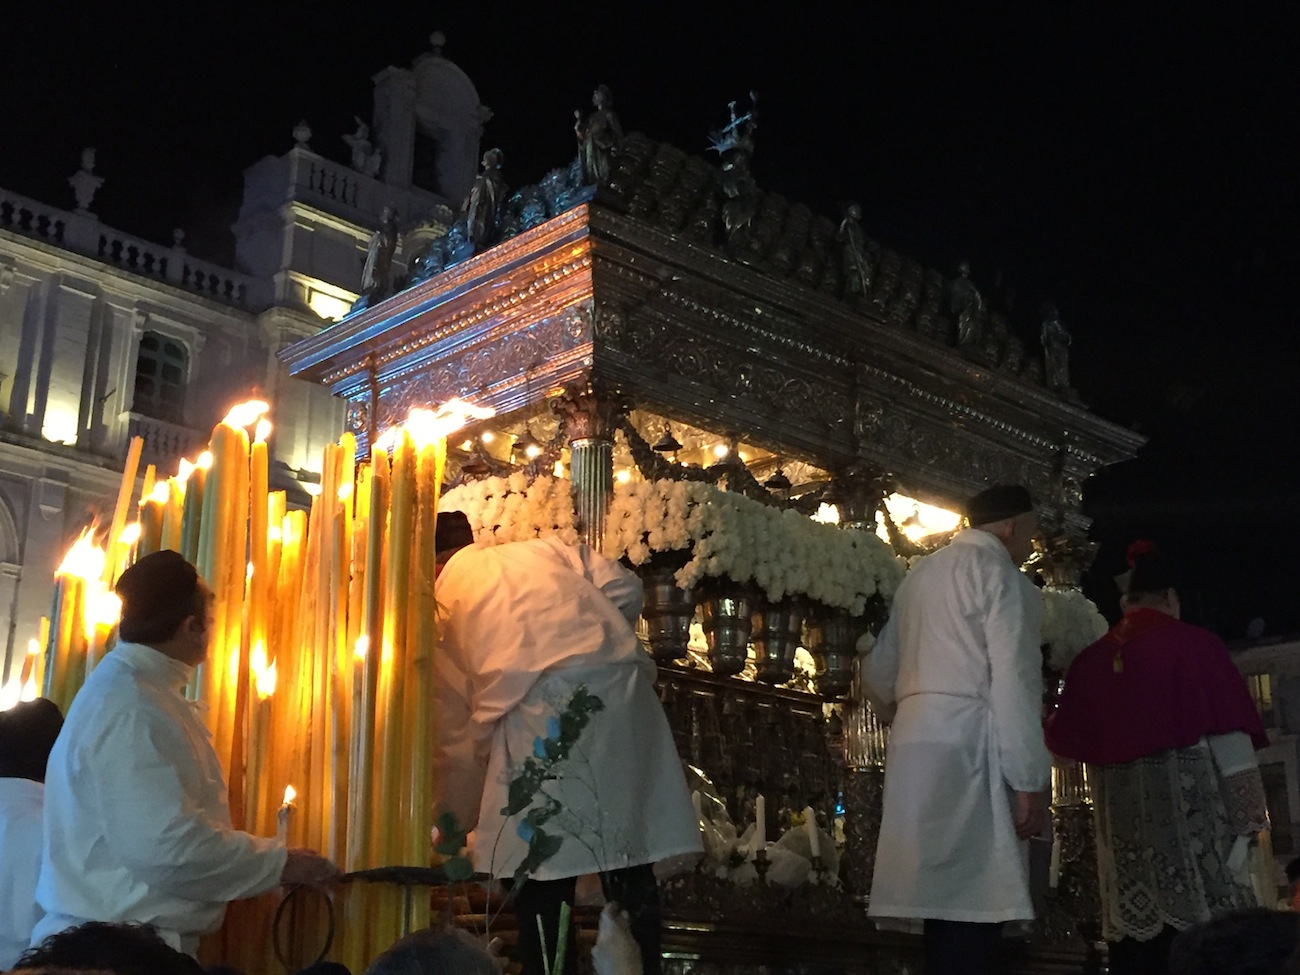 Carriage with St. Agatha's silver casket illuminated by candles